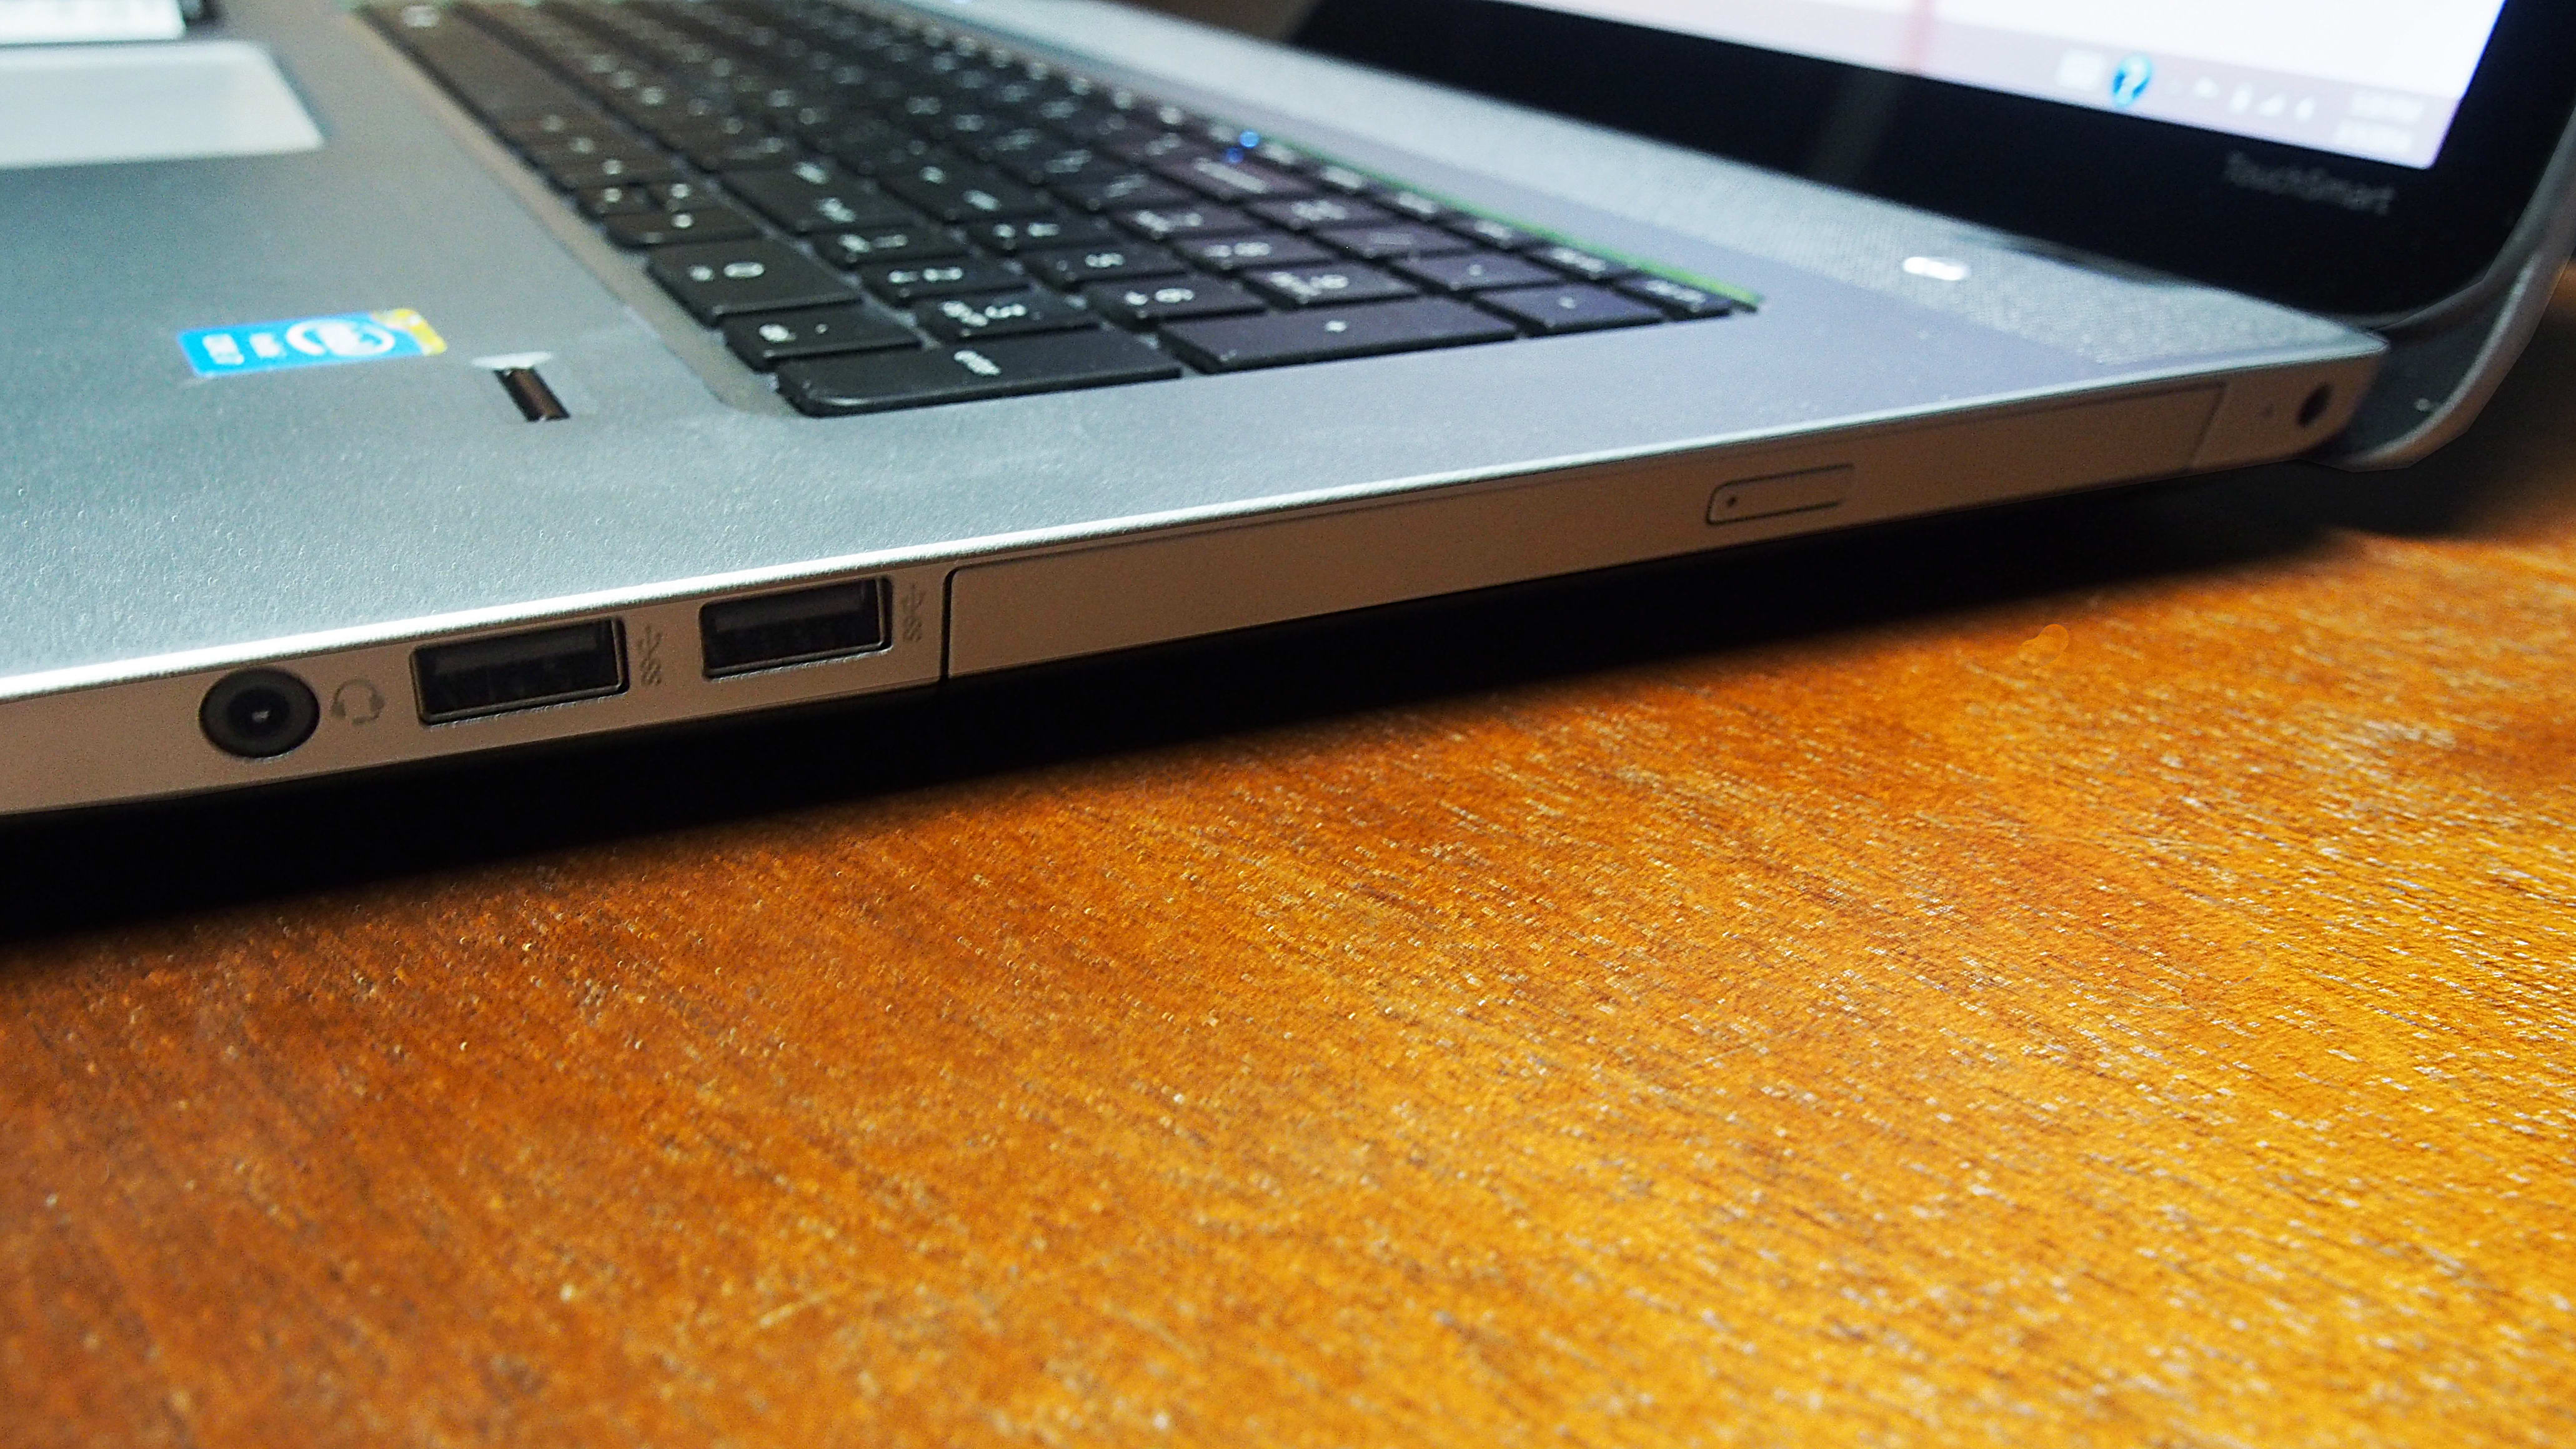 The right side of the Envy has a headphone jack, two USB 3.0 slots, a CD/DVD drive, and a power input.